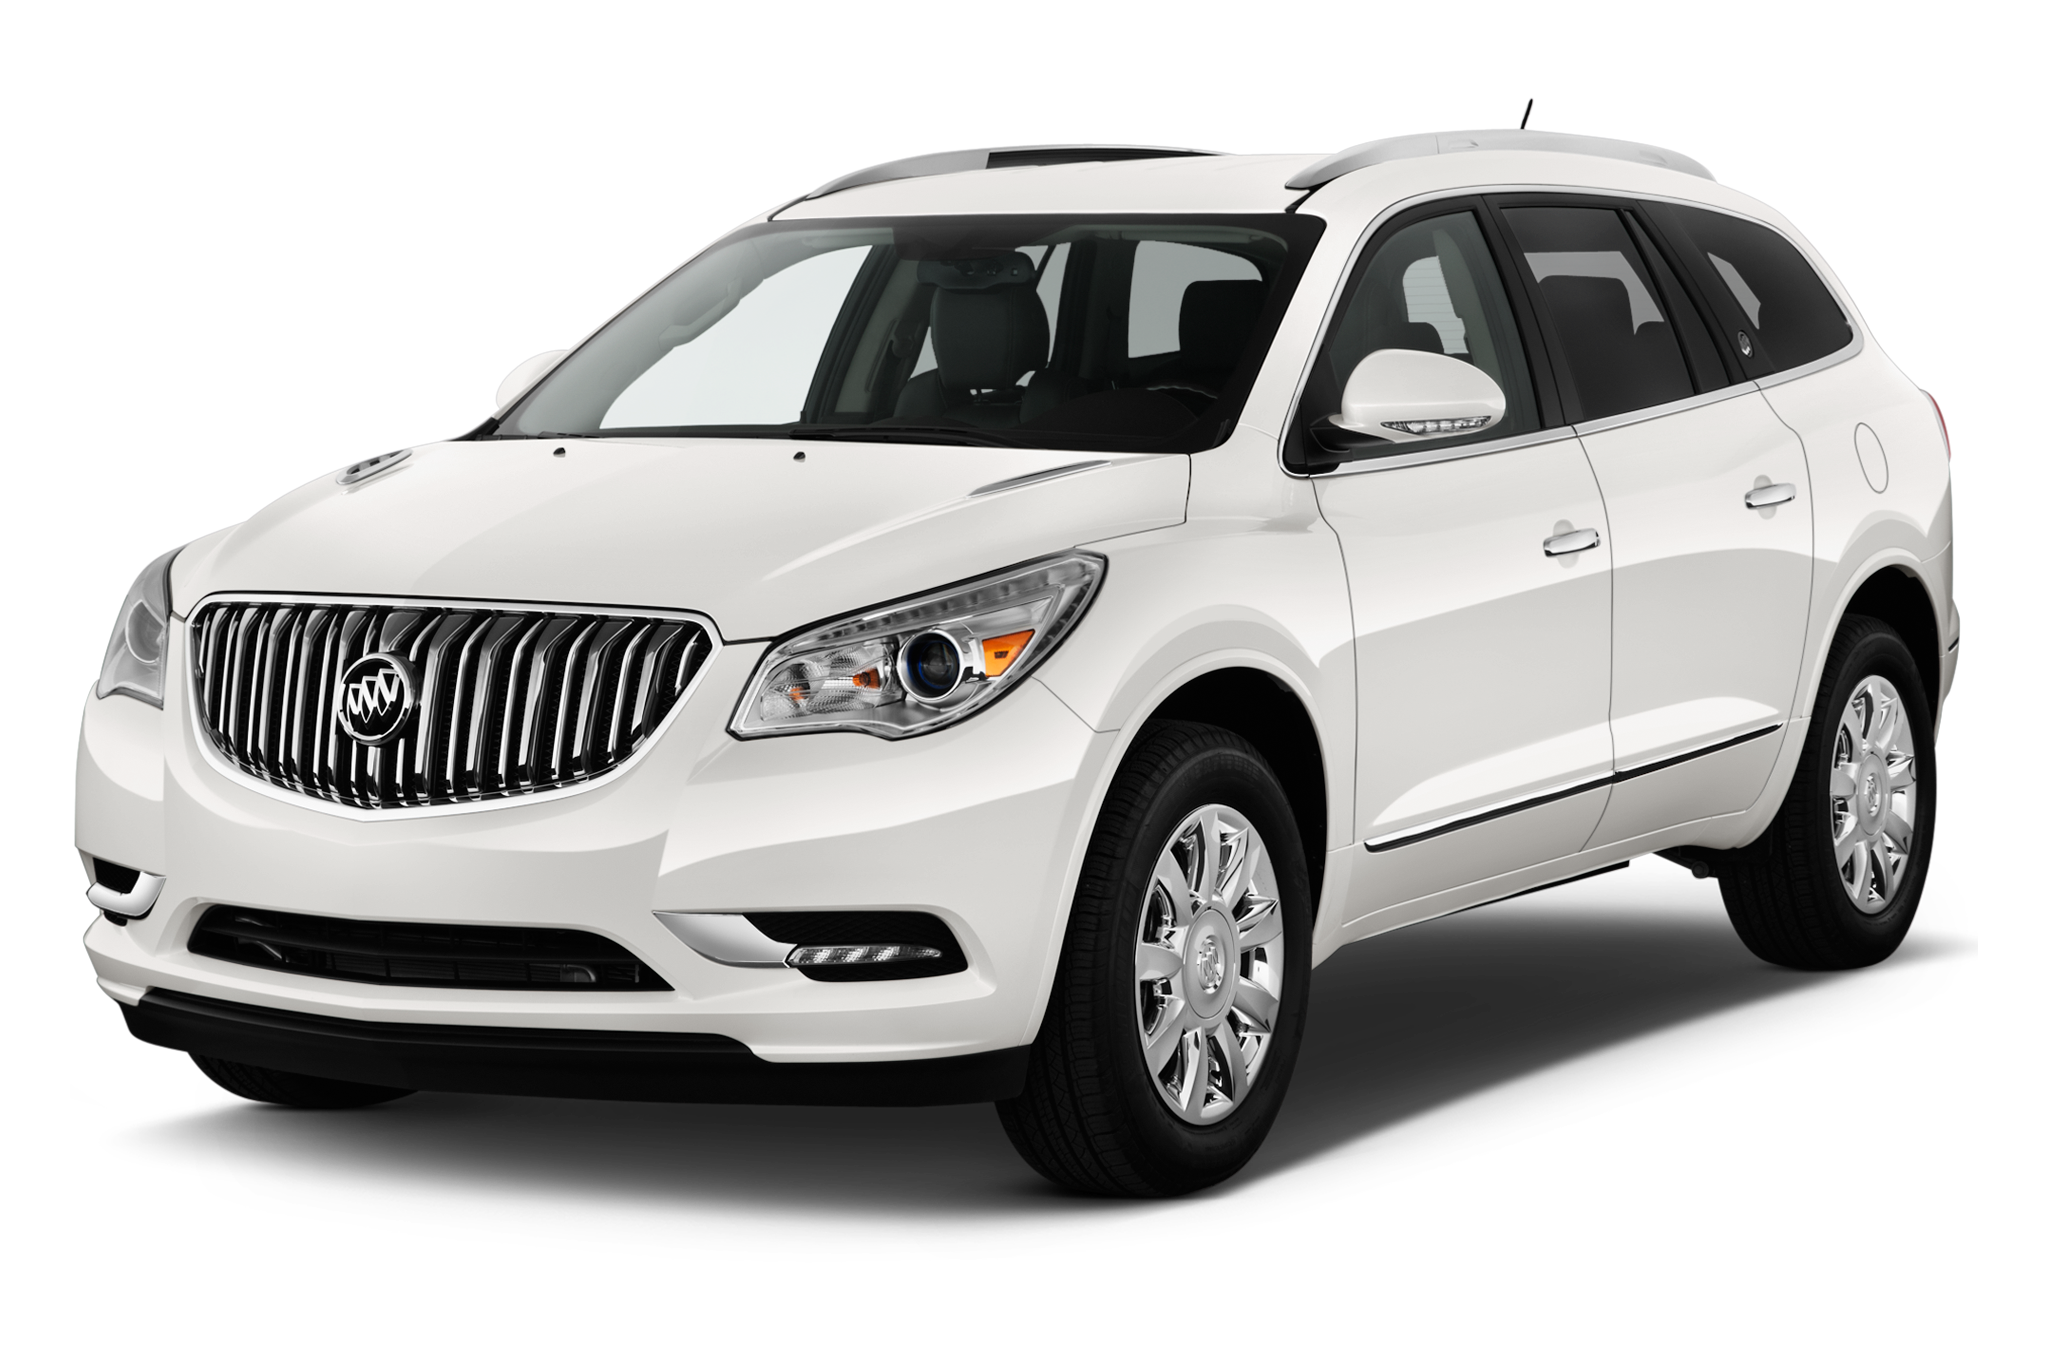 2017 buick enclave convenience suv angular front